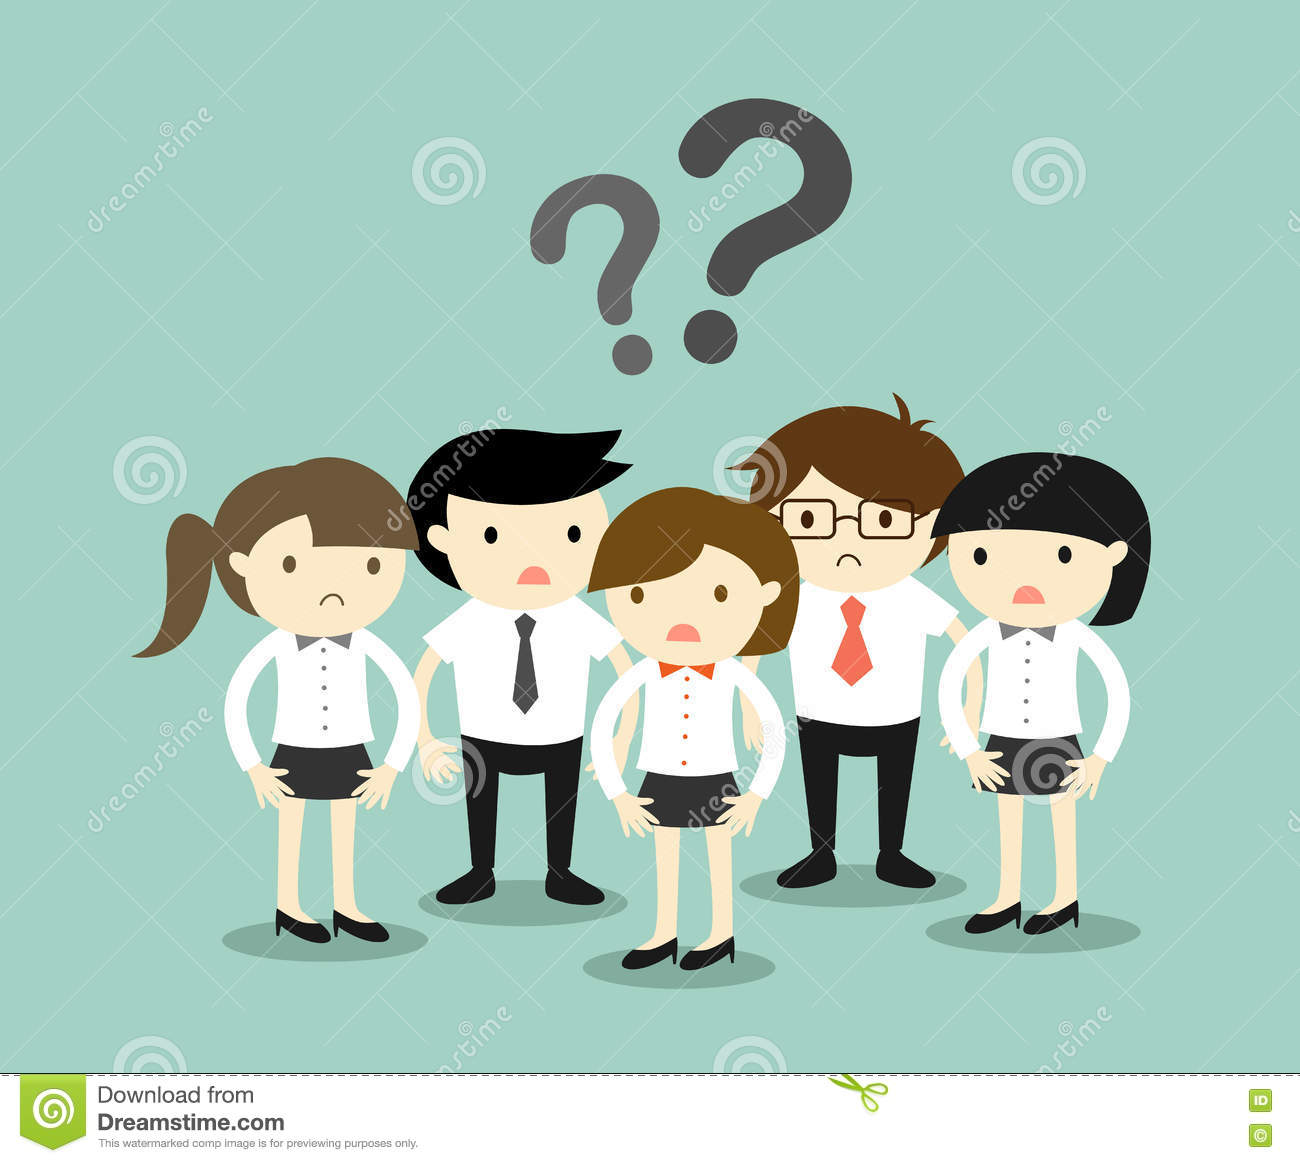 Confused Teen Stock Illustrations – 545 Confused Teen Stock Illustrations,  Vectors & Clipart - Dreamstime